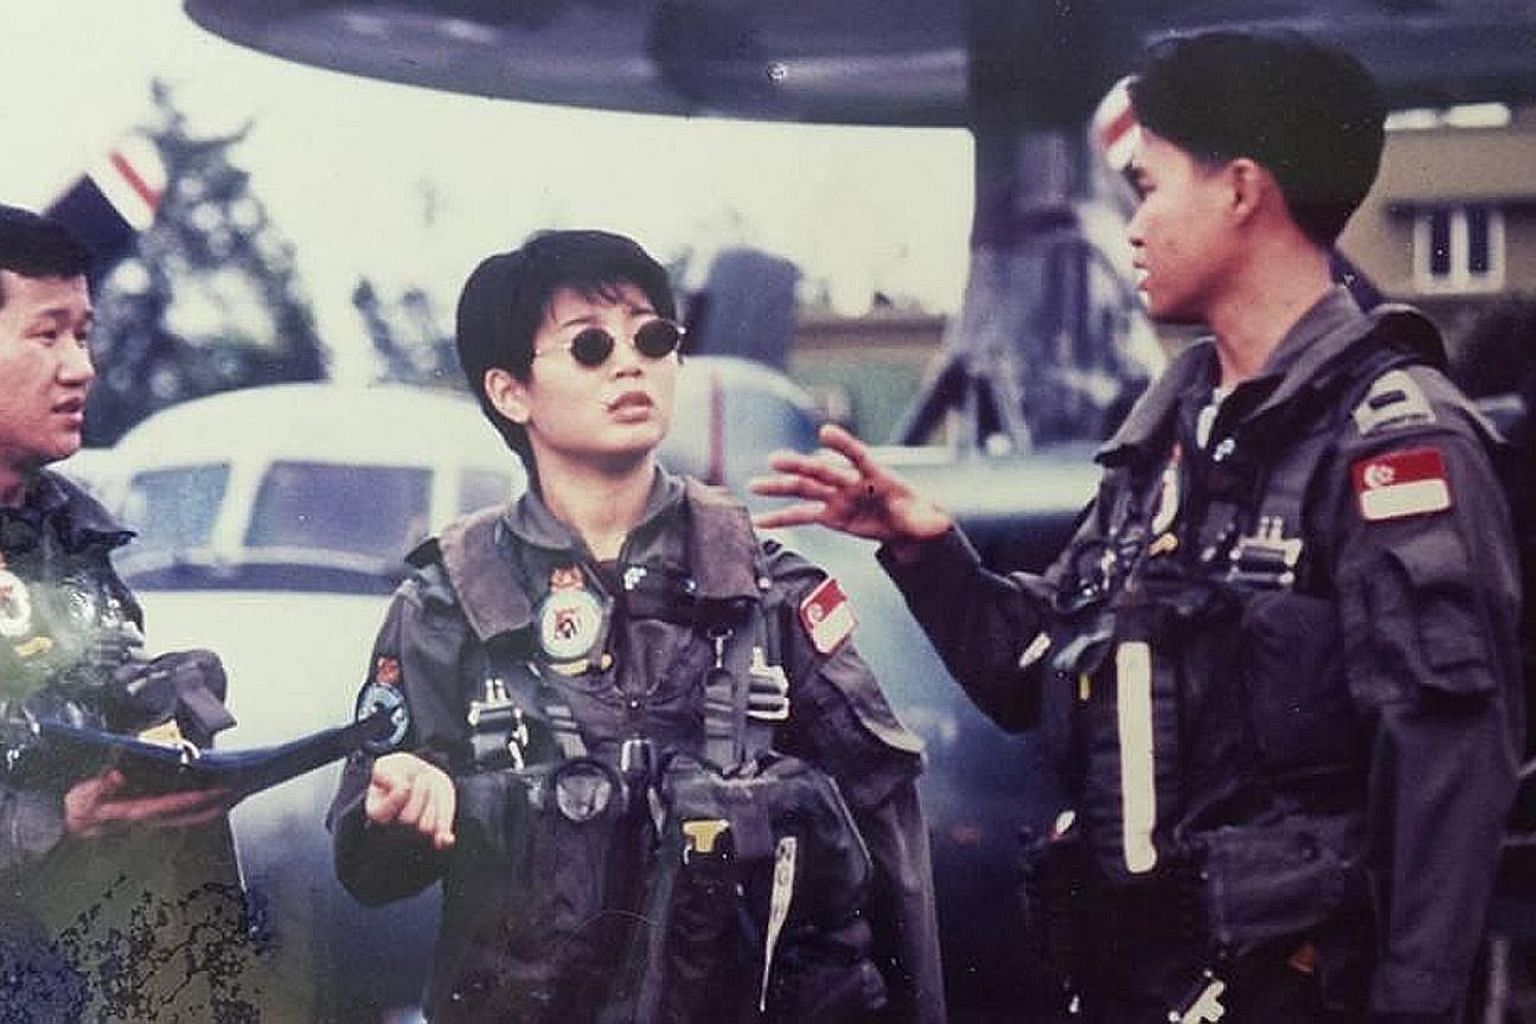 Ms Doris Ng in her earlier days (above) in the Republic of Singapore Air Force, where she was the first woman selected to join the aircrew of the E-2C Hawkeye aircraft. Ms Ng (left), who later joined the Singapore Prison Service, is now executive dir